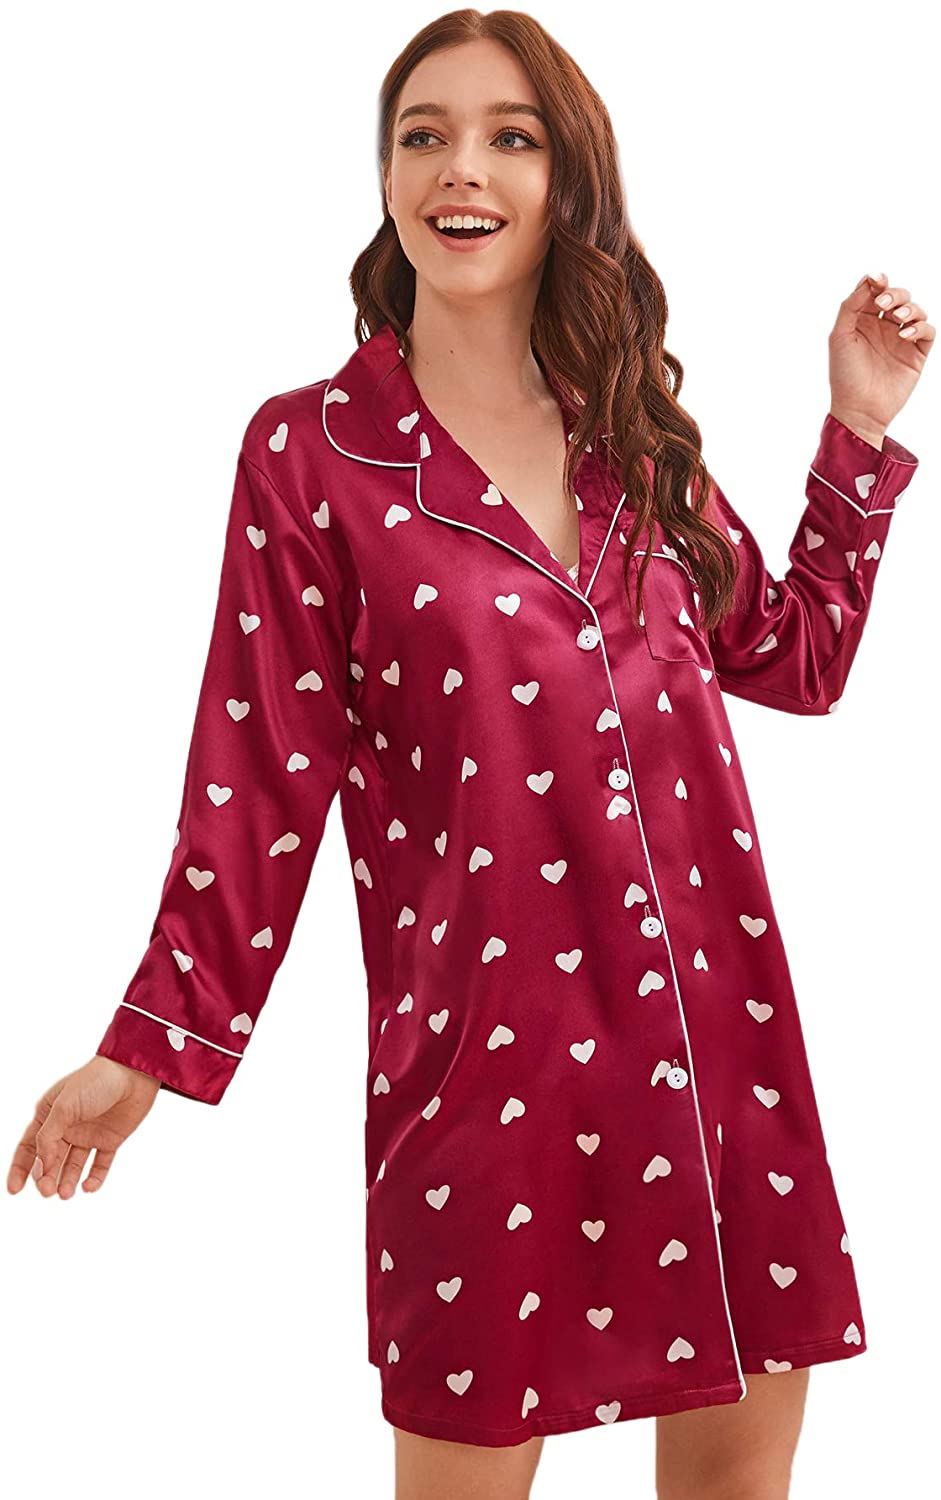 Floerns Women's Notch Collar Long Sleeve Satin Sleepwear Pajama